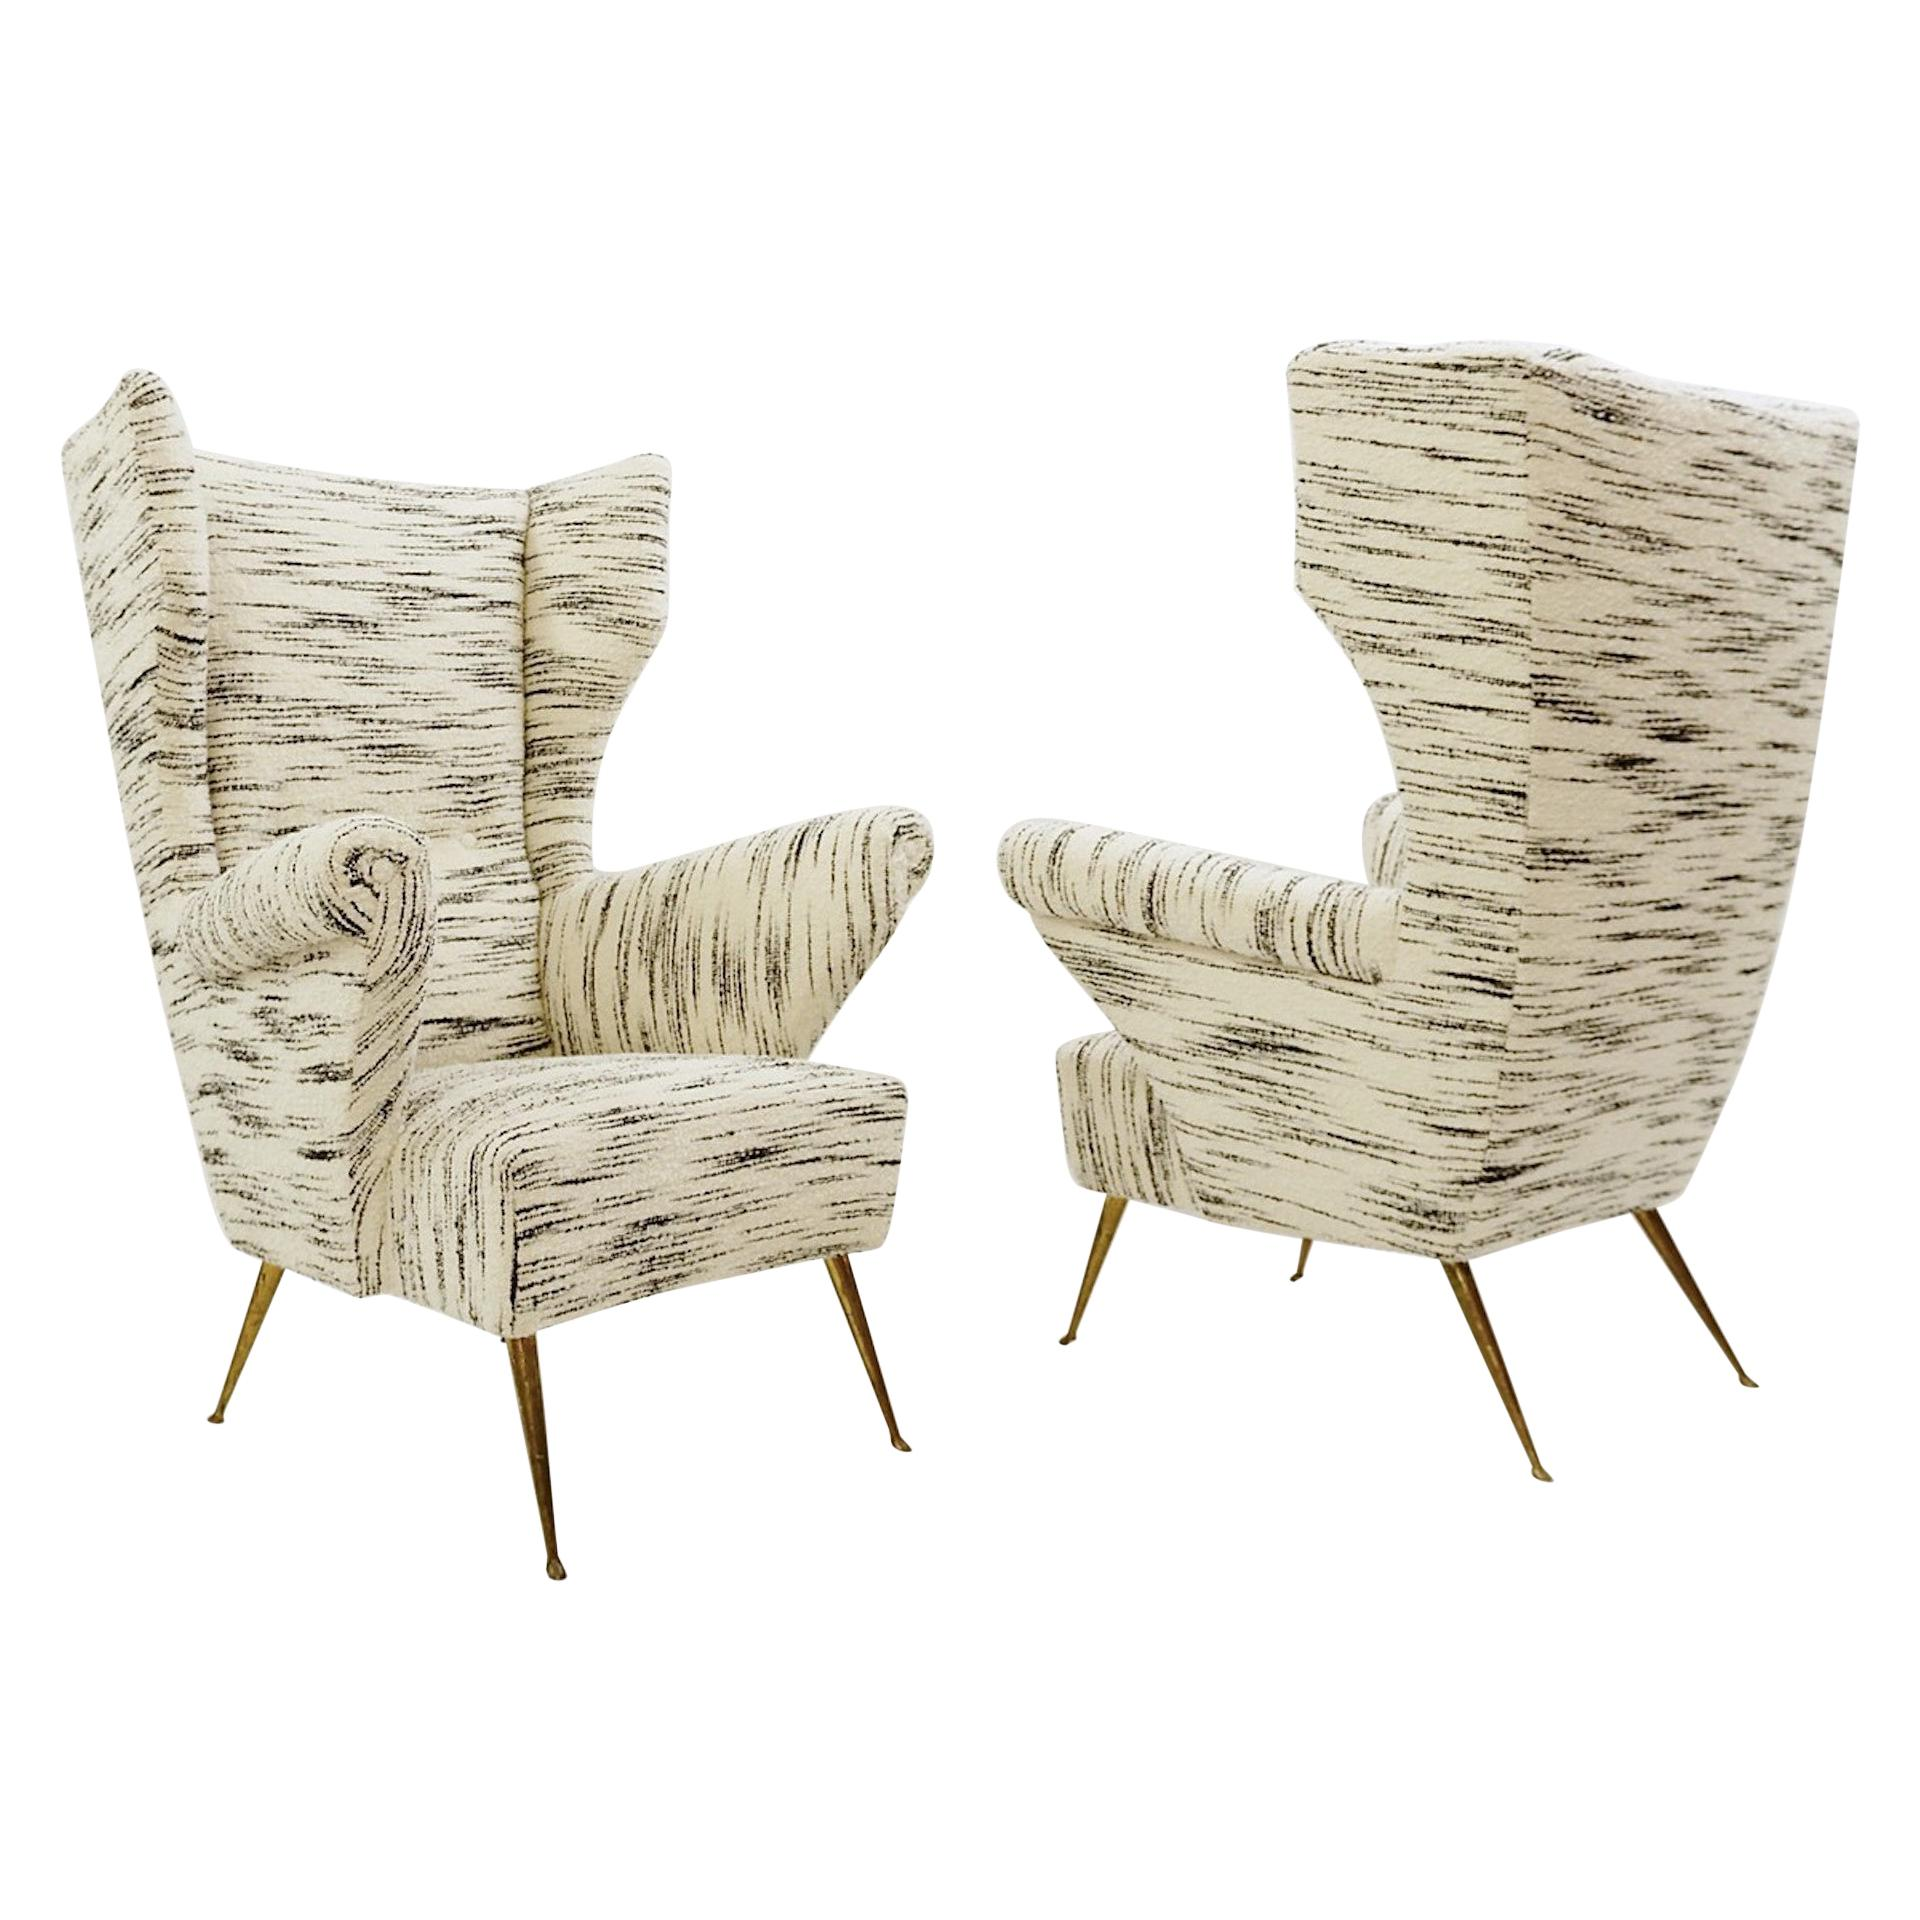 Pair of Italian Mid-Century Modern High Back Armchairs, Newly Upholstered